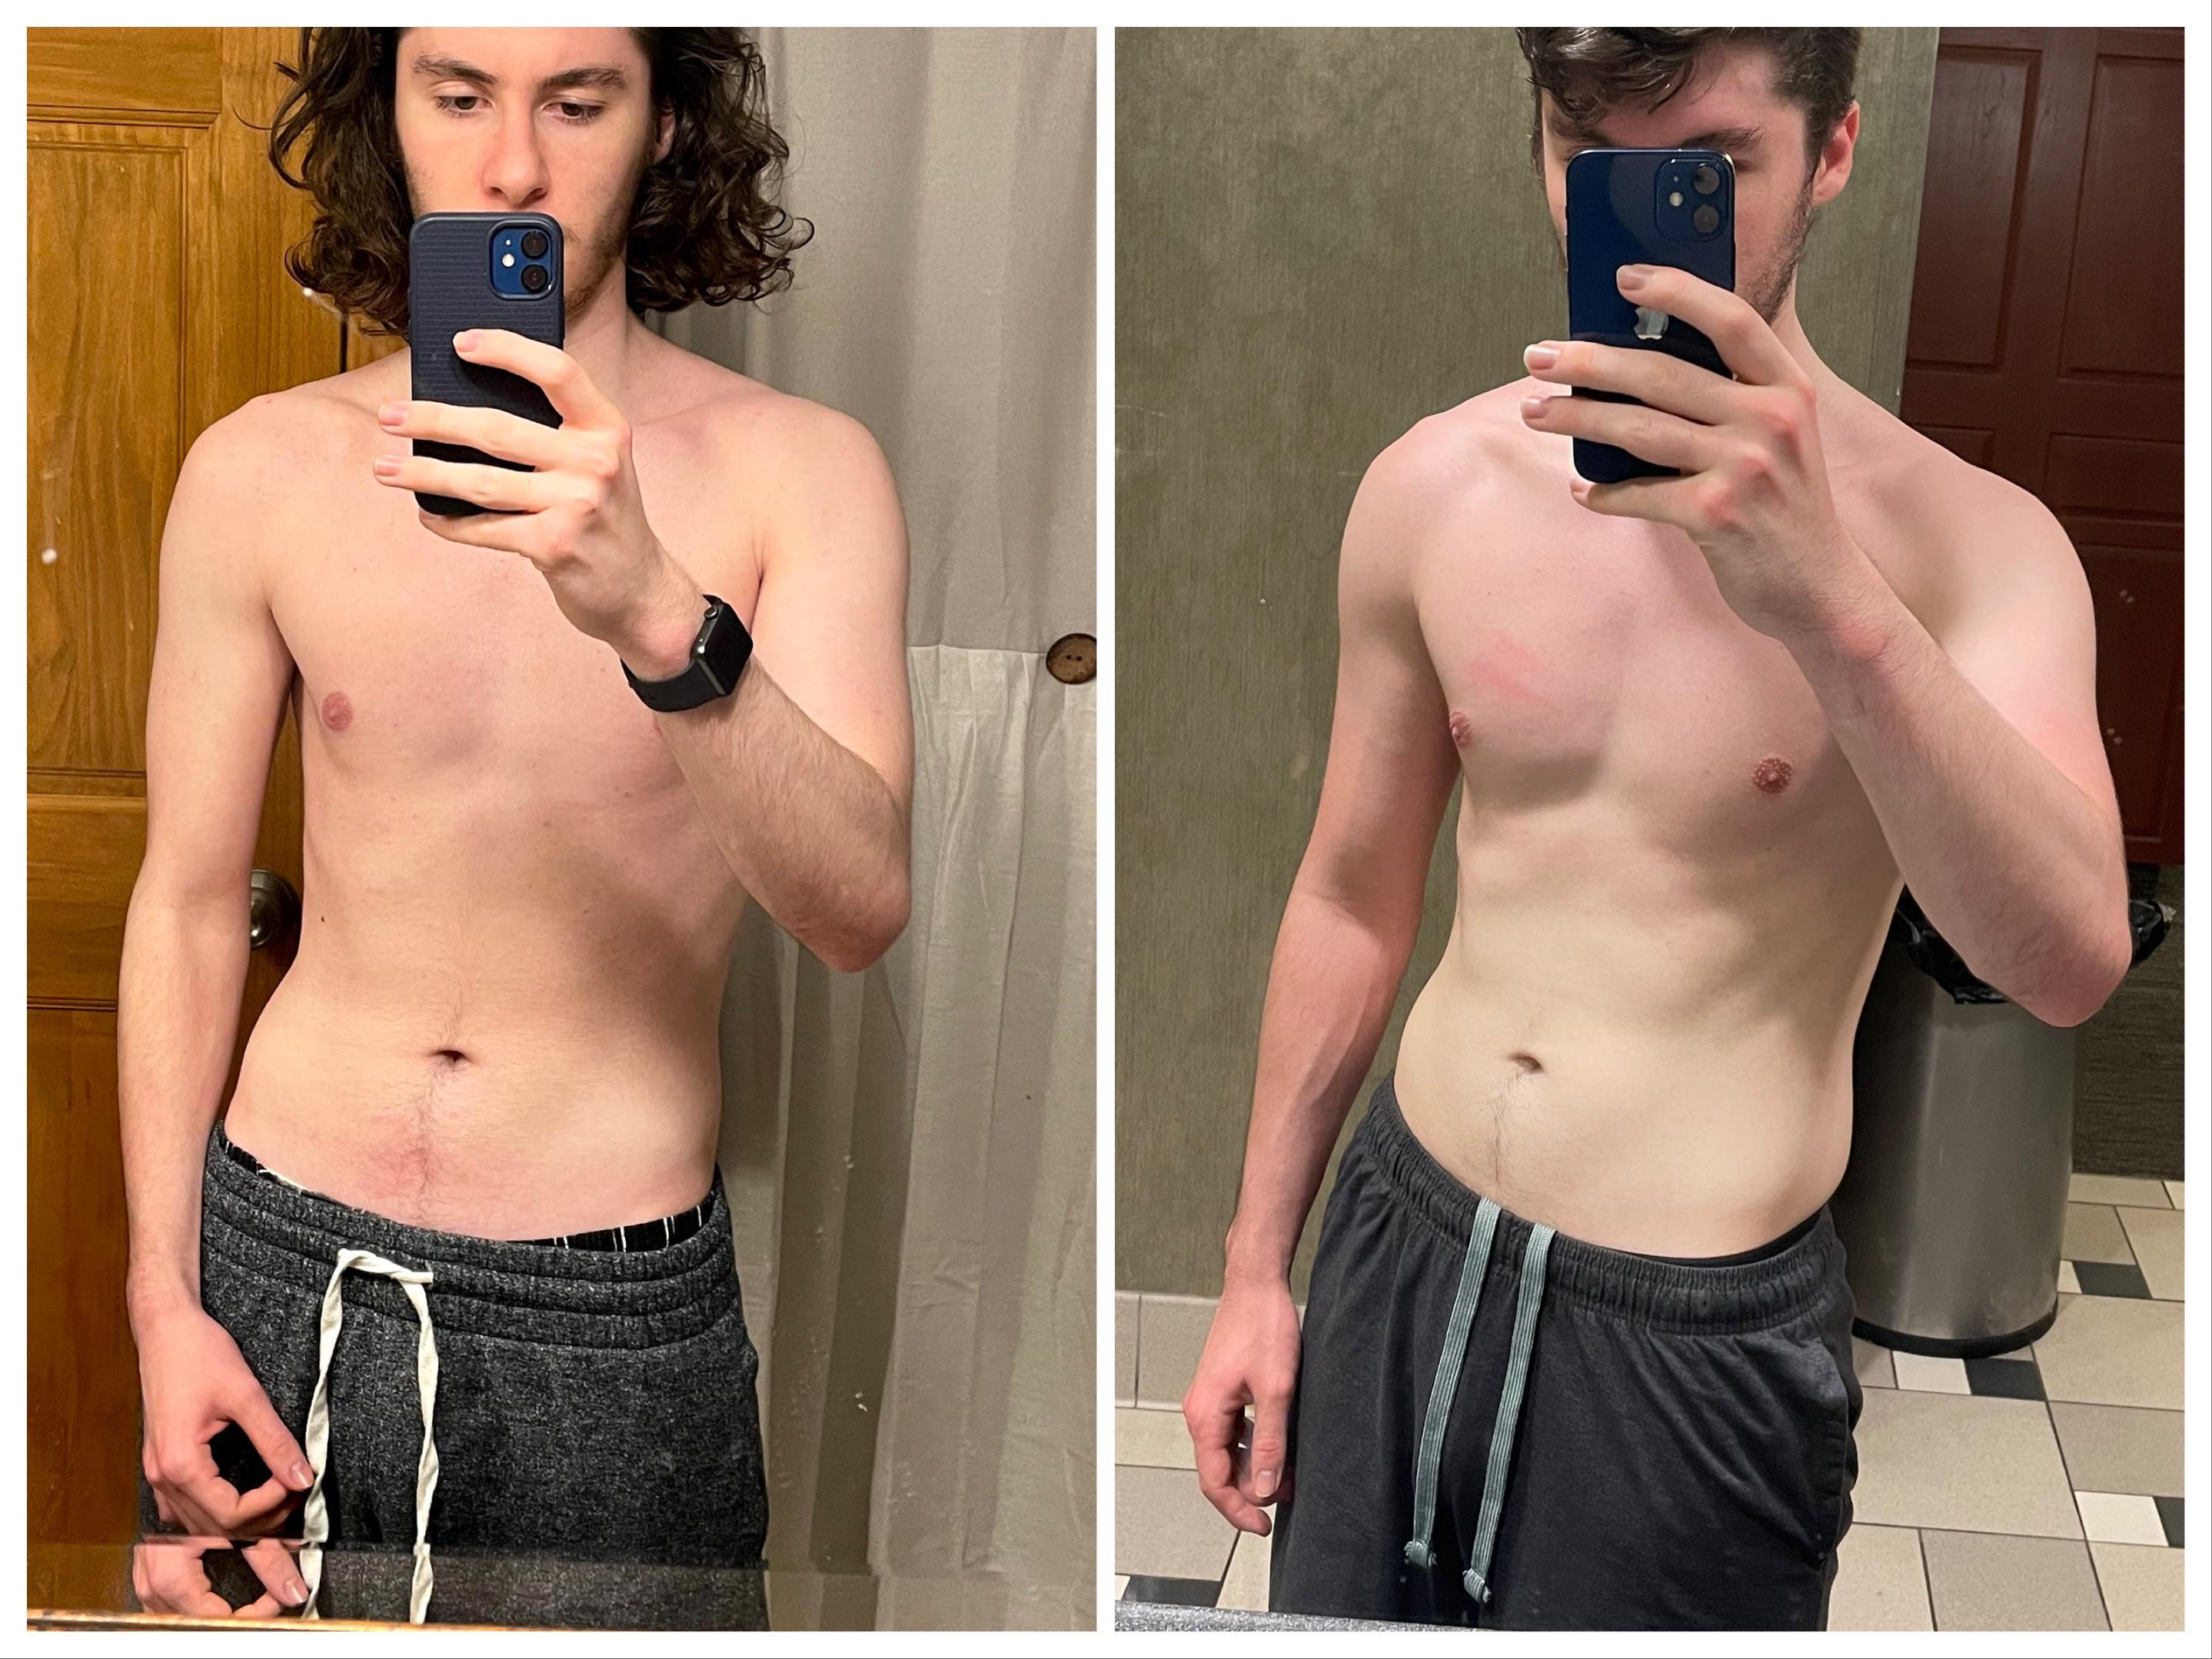 5 foot 10 Male 10 lbs Muscle Gain Before and After 145 lbs to 155 lbs